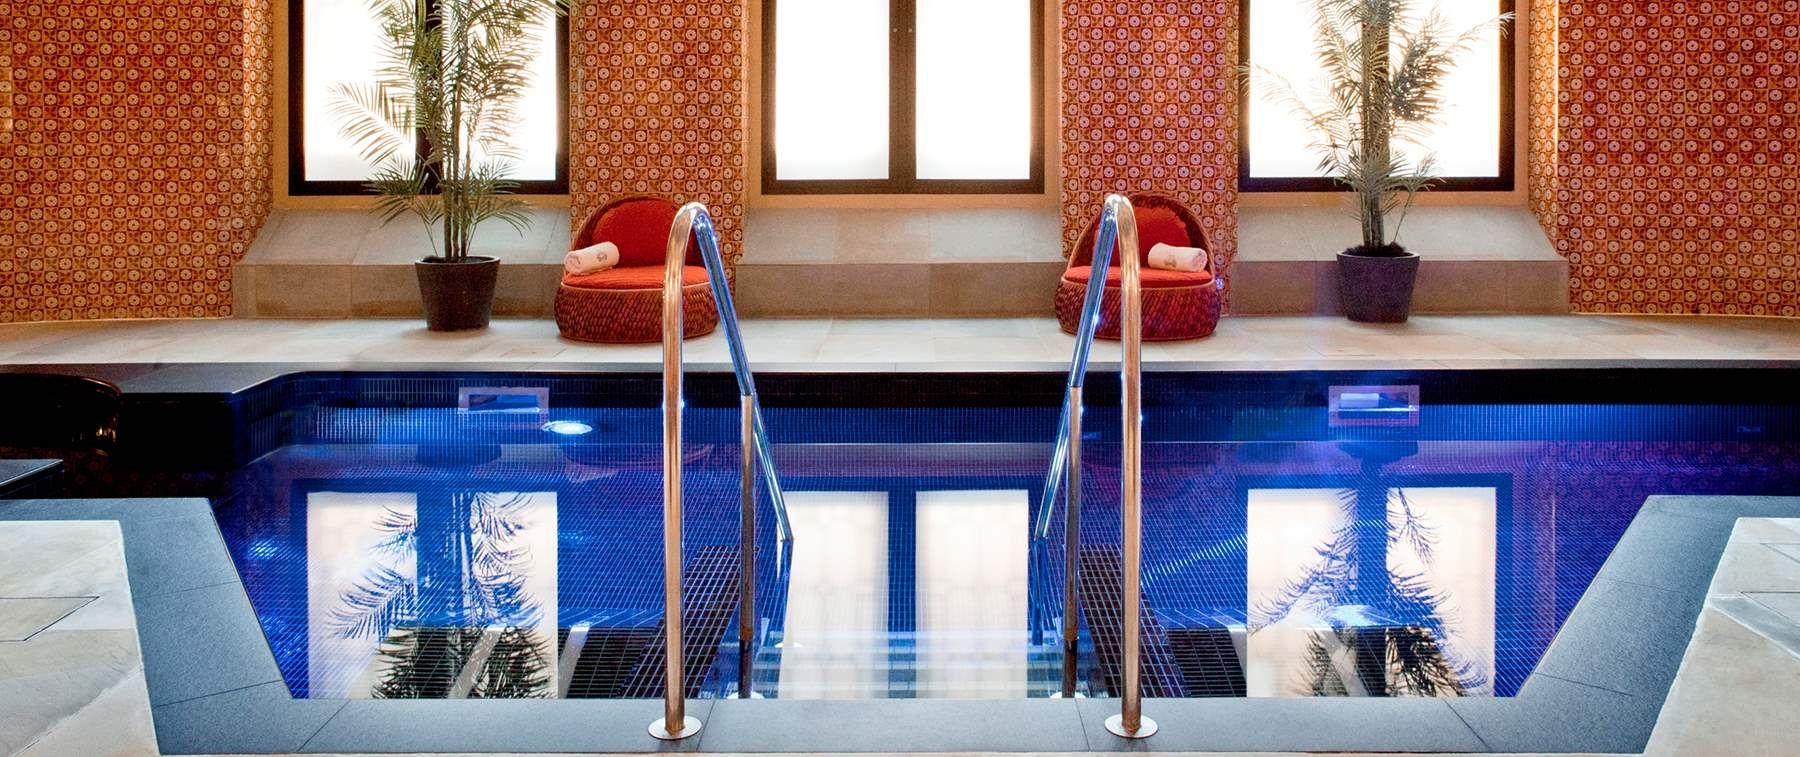 Pool View - St. Pancras Spa